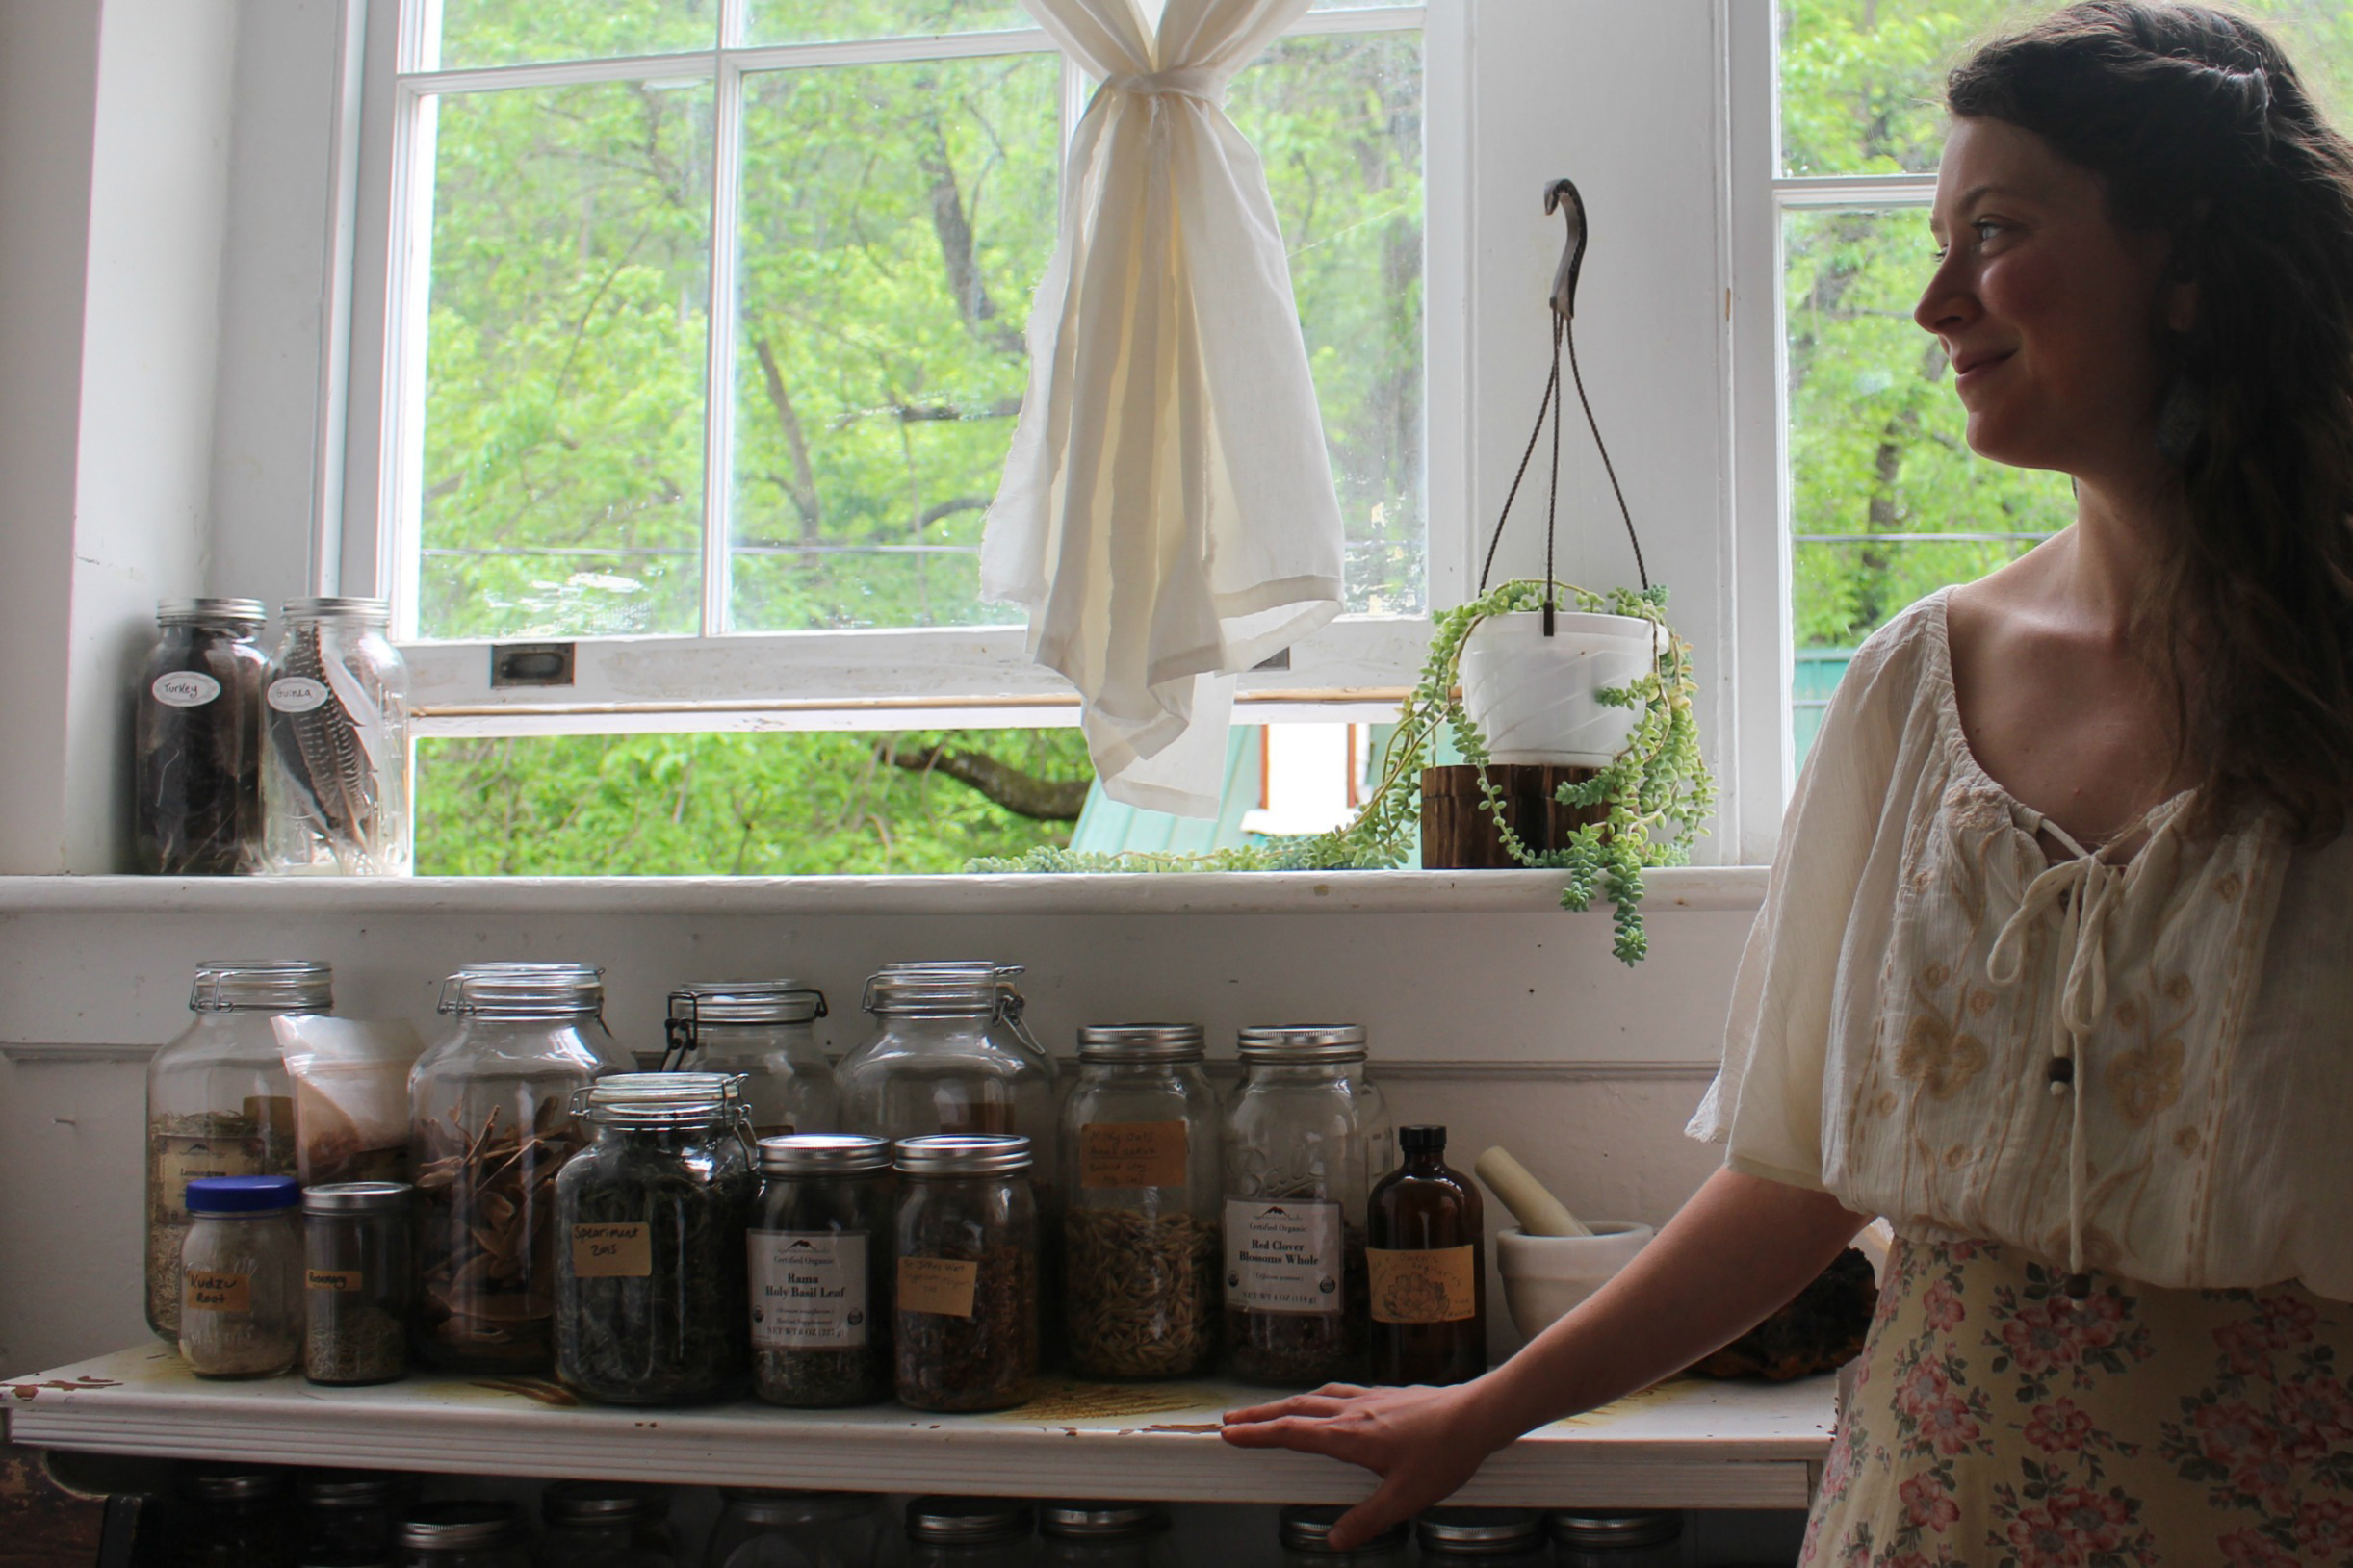 Asia Suler stands beside a stock of dried herbs